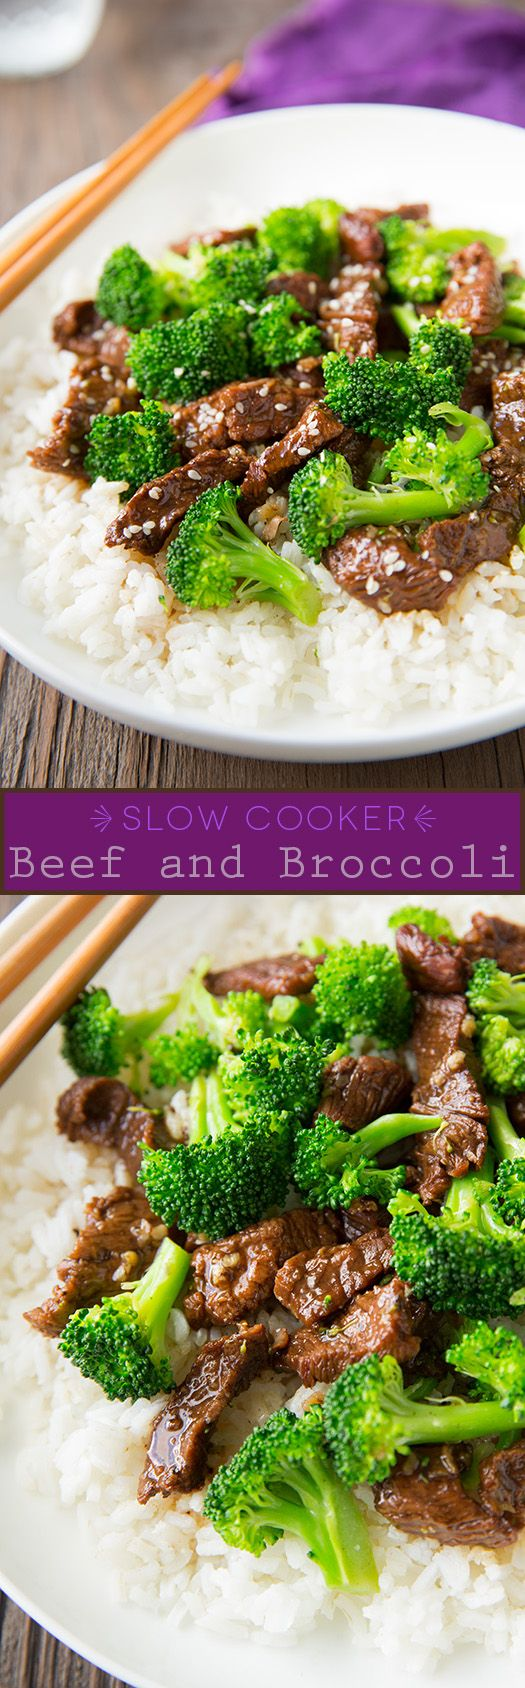 Slow Cooker Beef and Broccoli - Cooking Classy